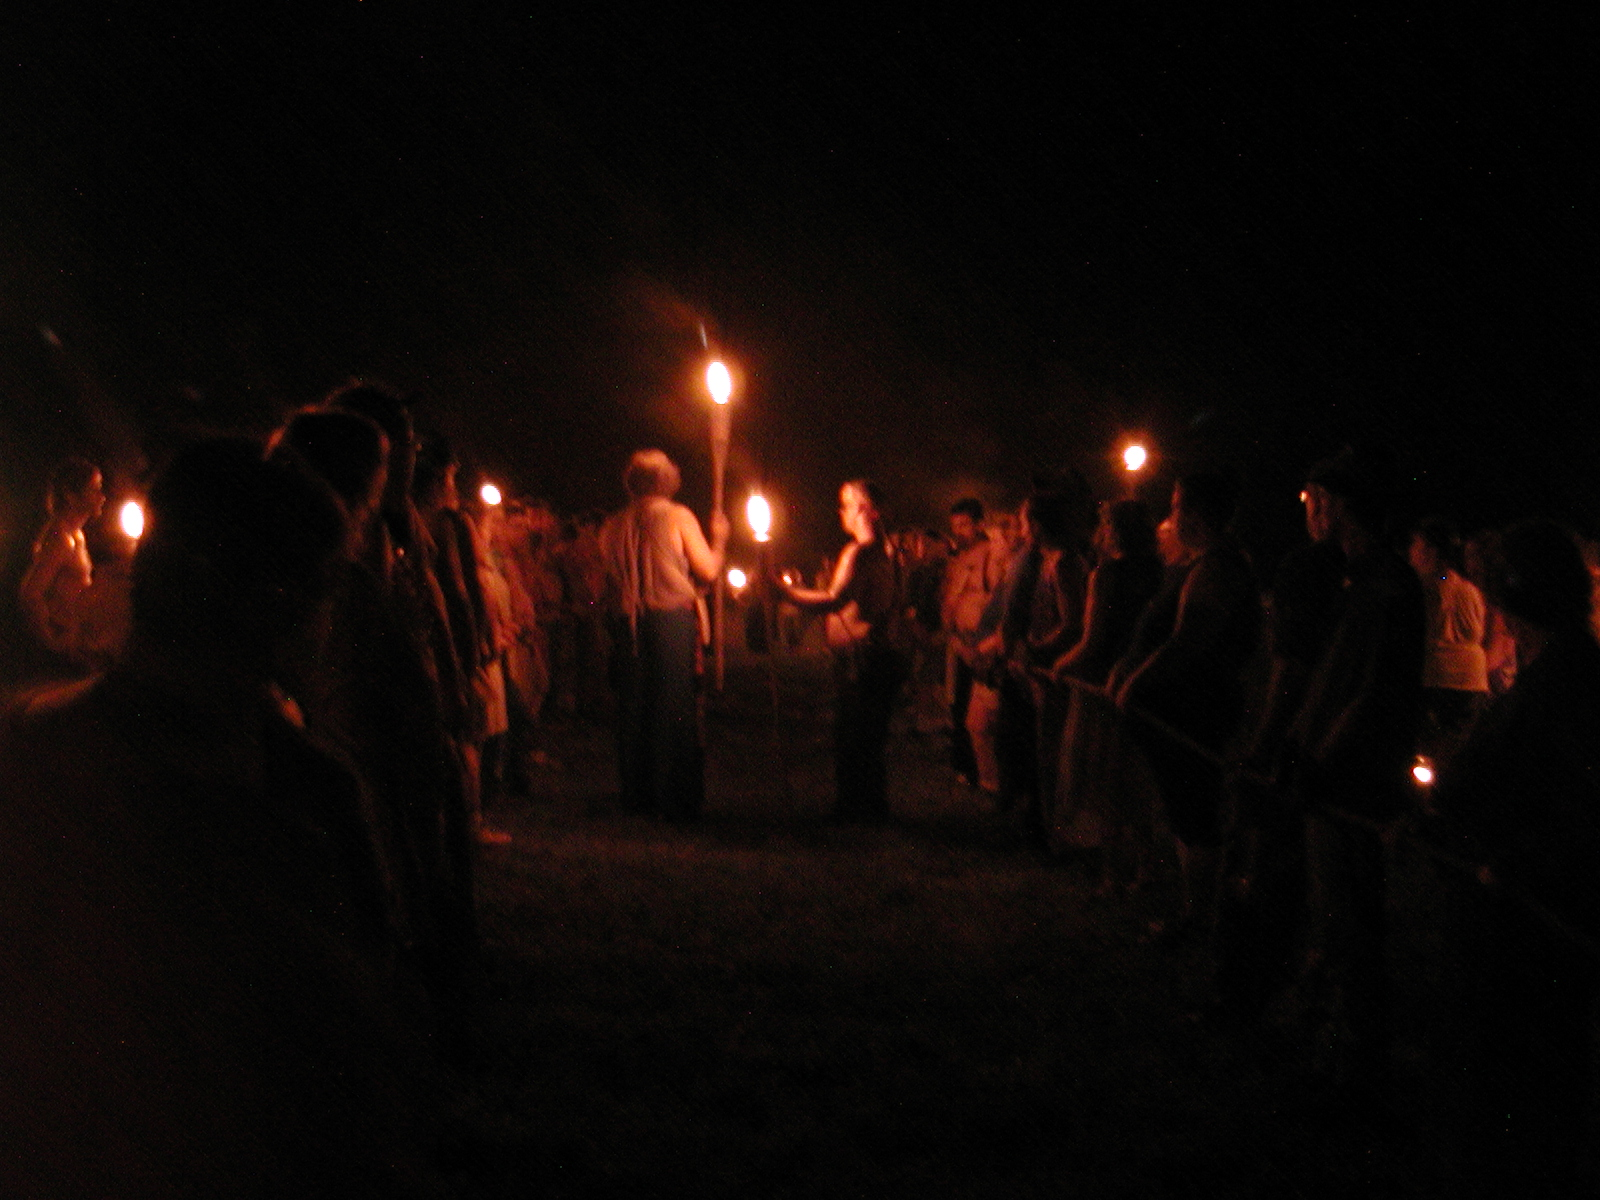 Torchlight ceremony